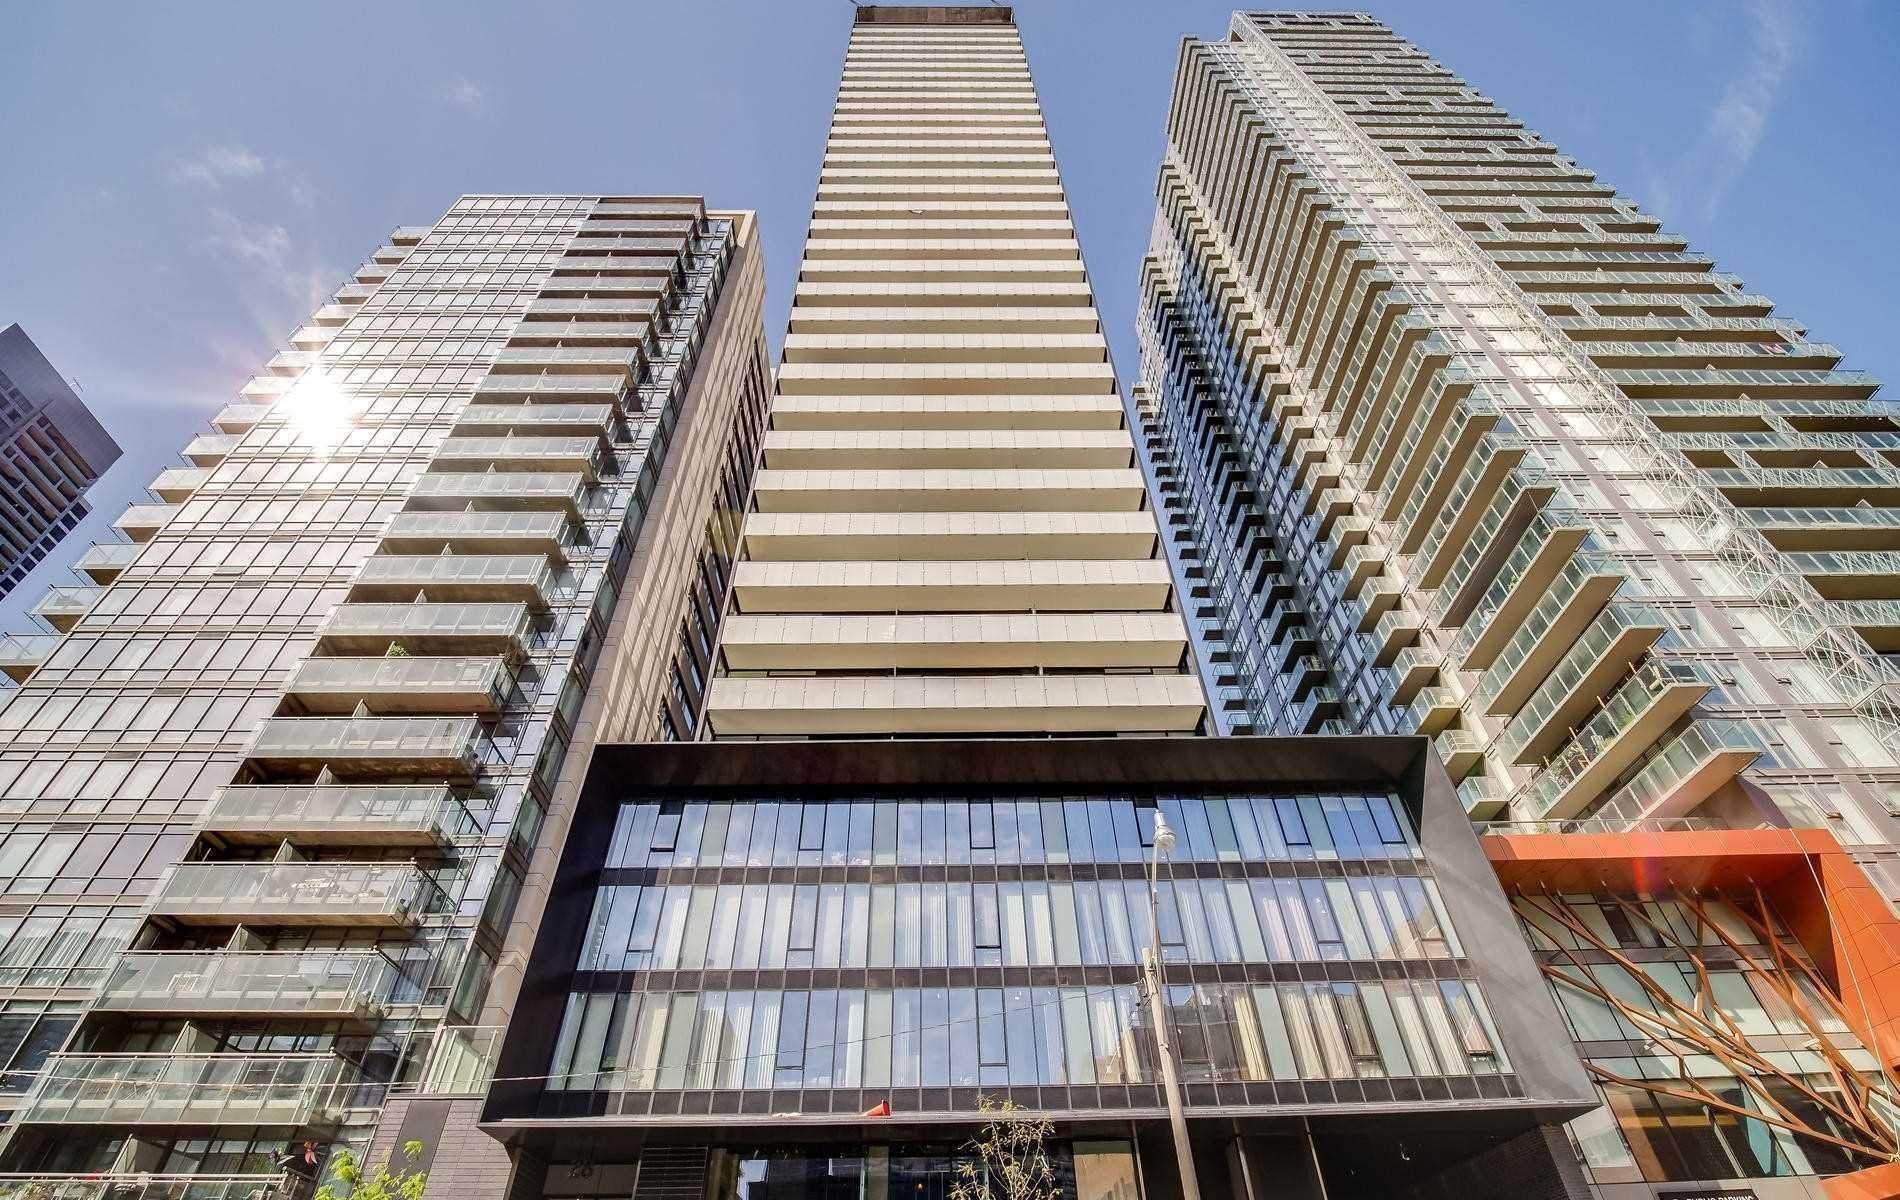 28 Wellesley  St E, unit 2908 for rent in Toronto - image #1